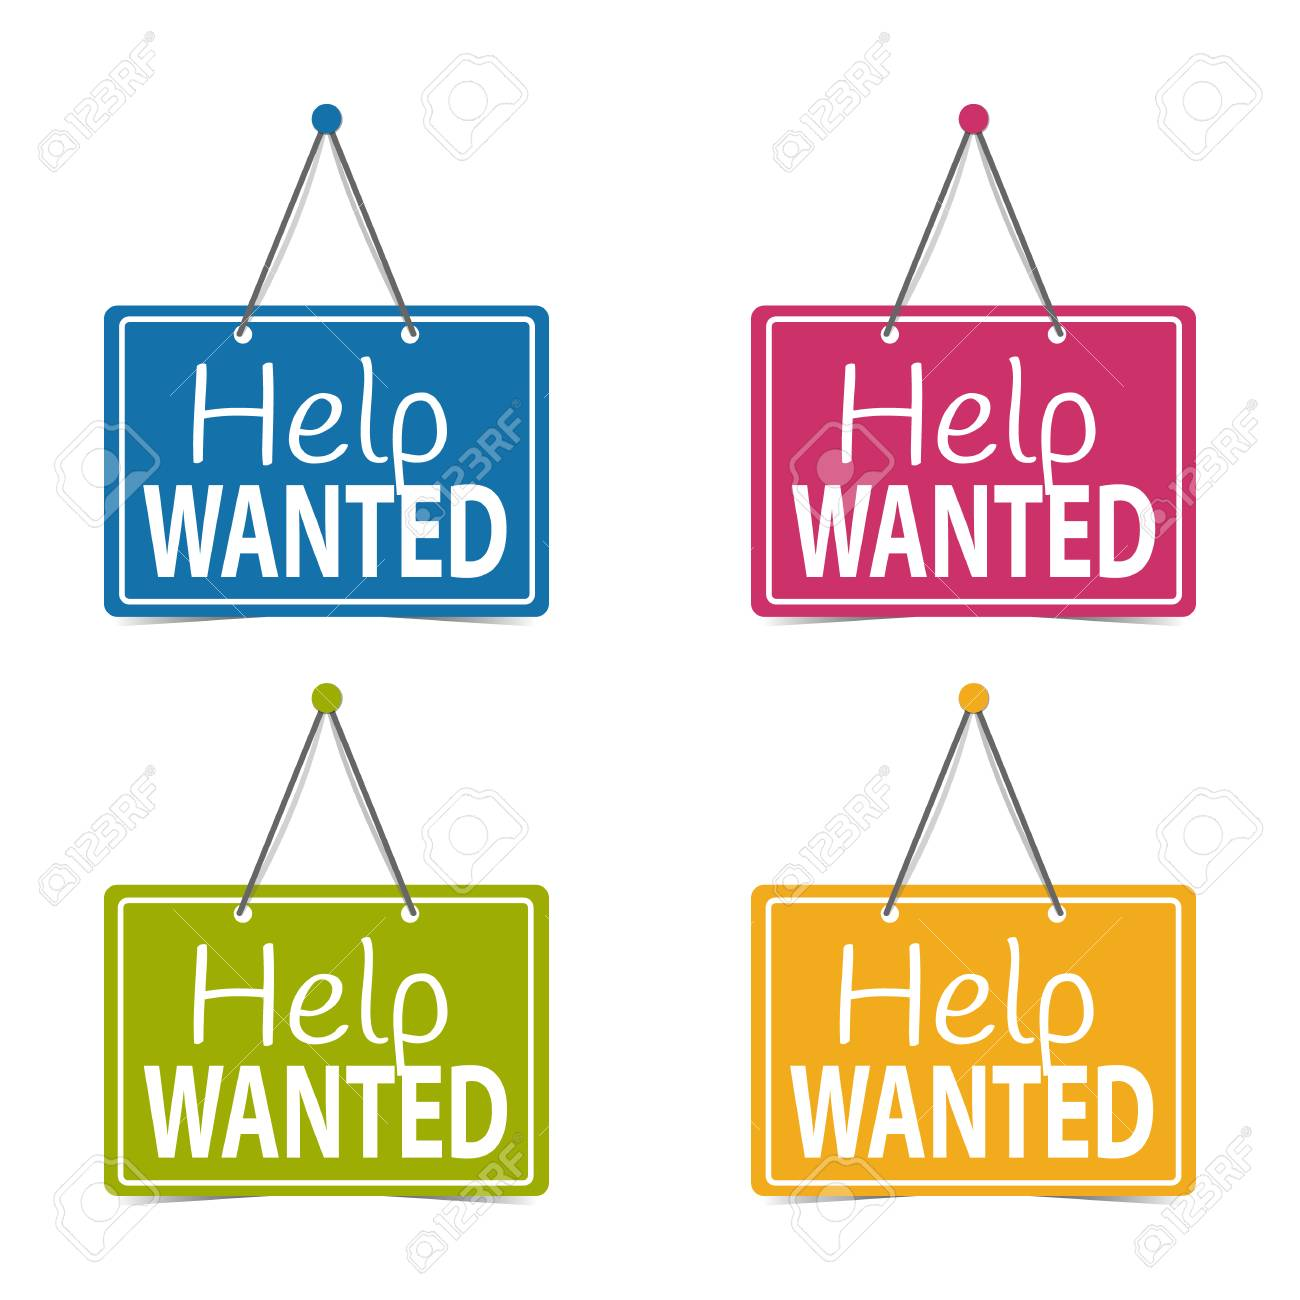 Help Wanted Hanging Business Signs - Vector Illustration - Isolated On White Background - 117626073